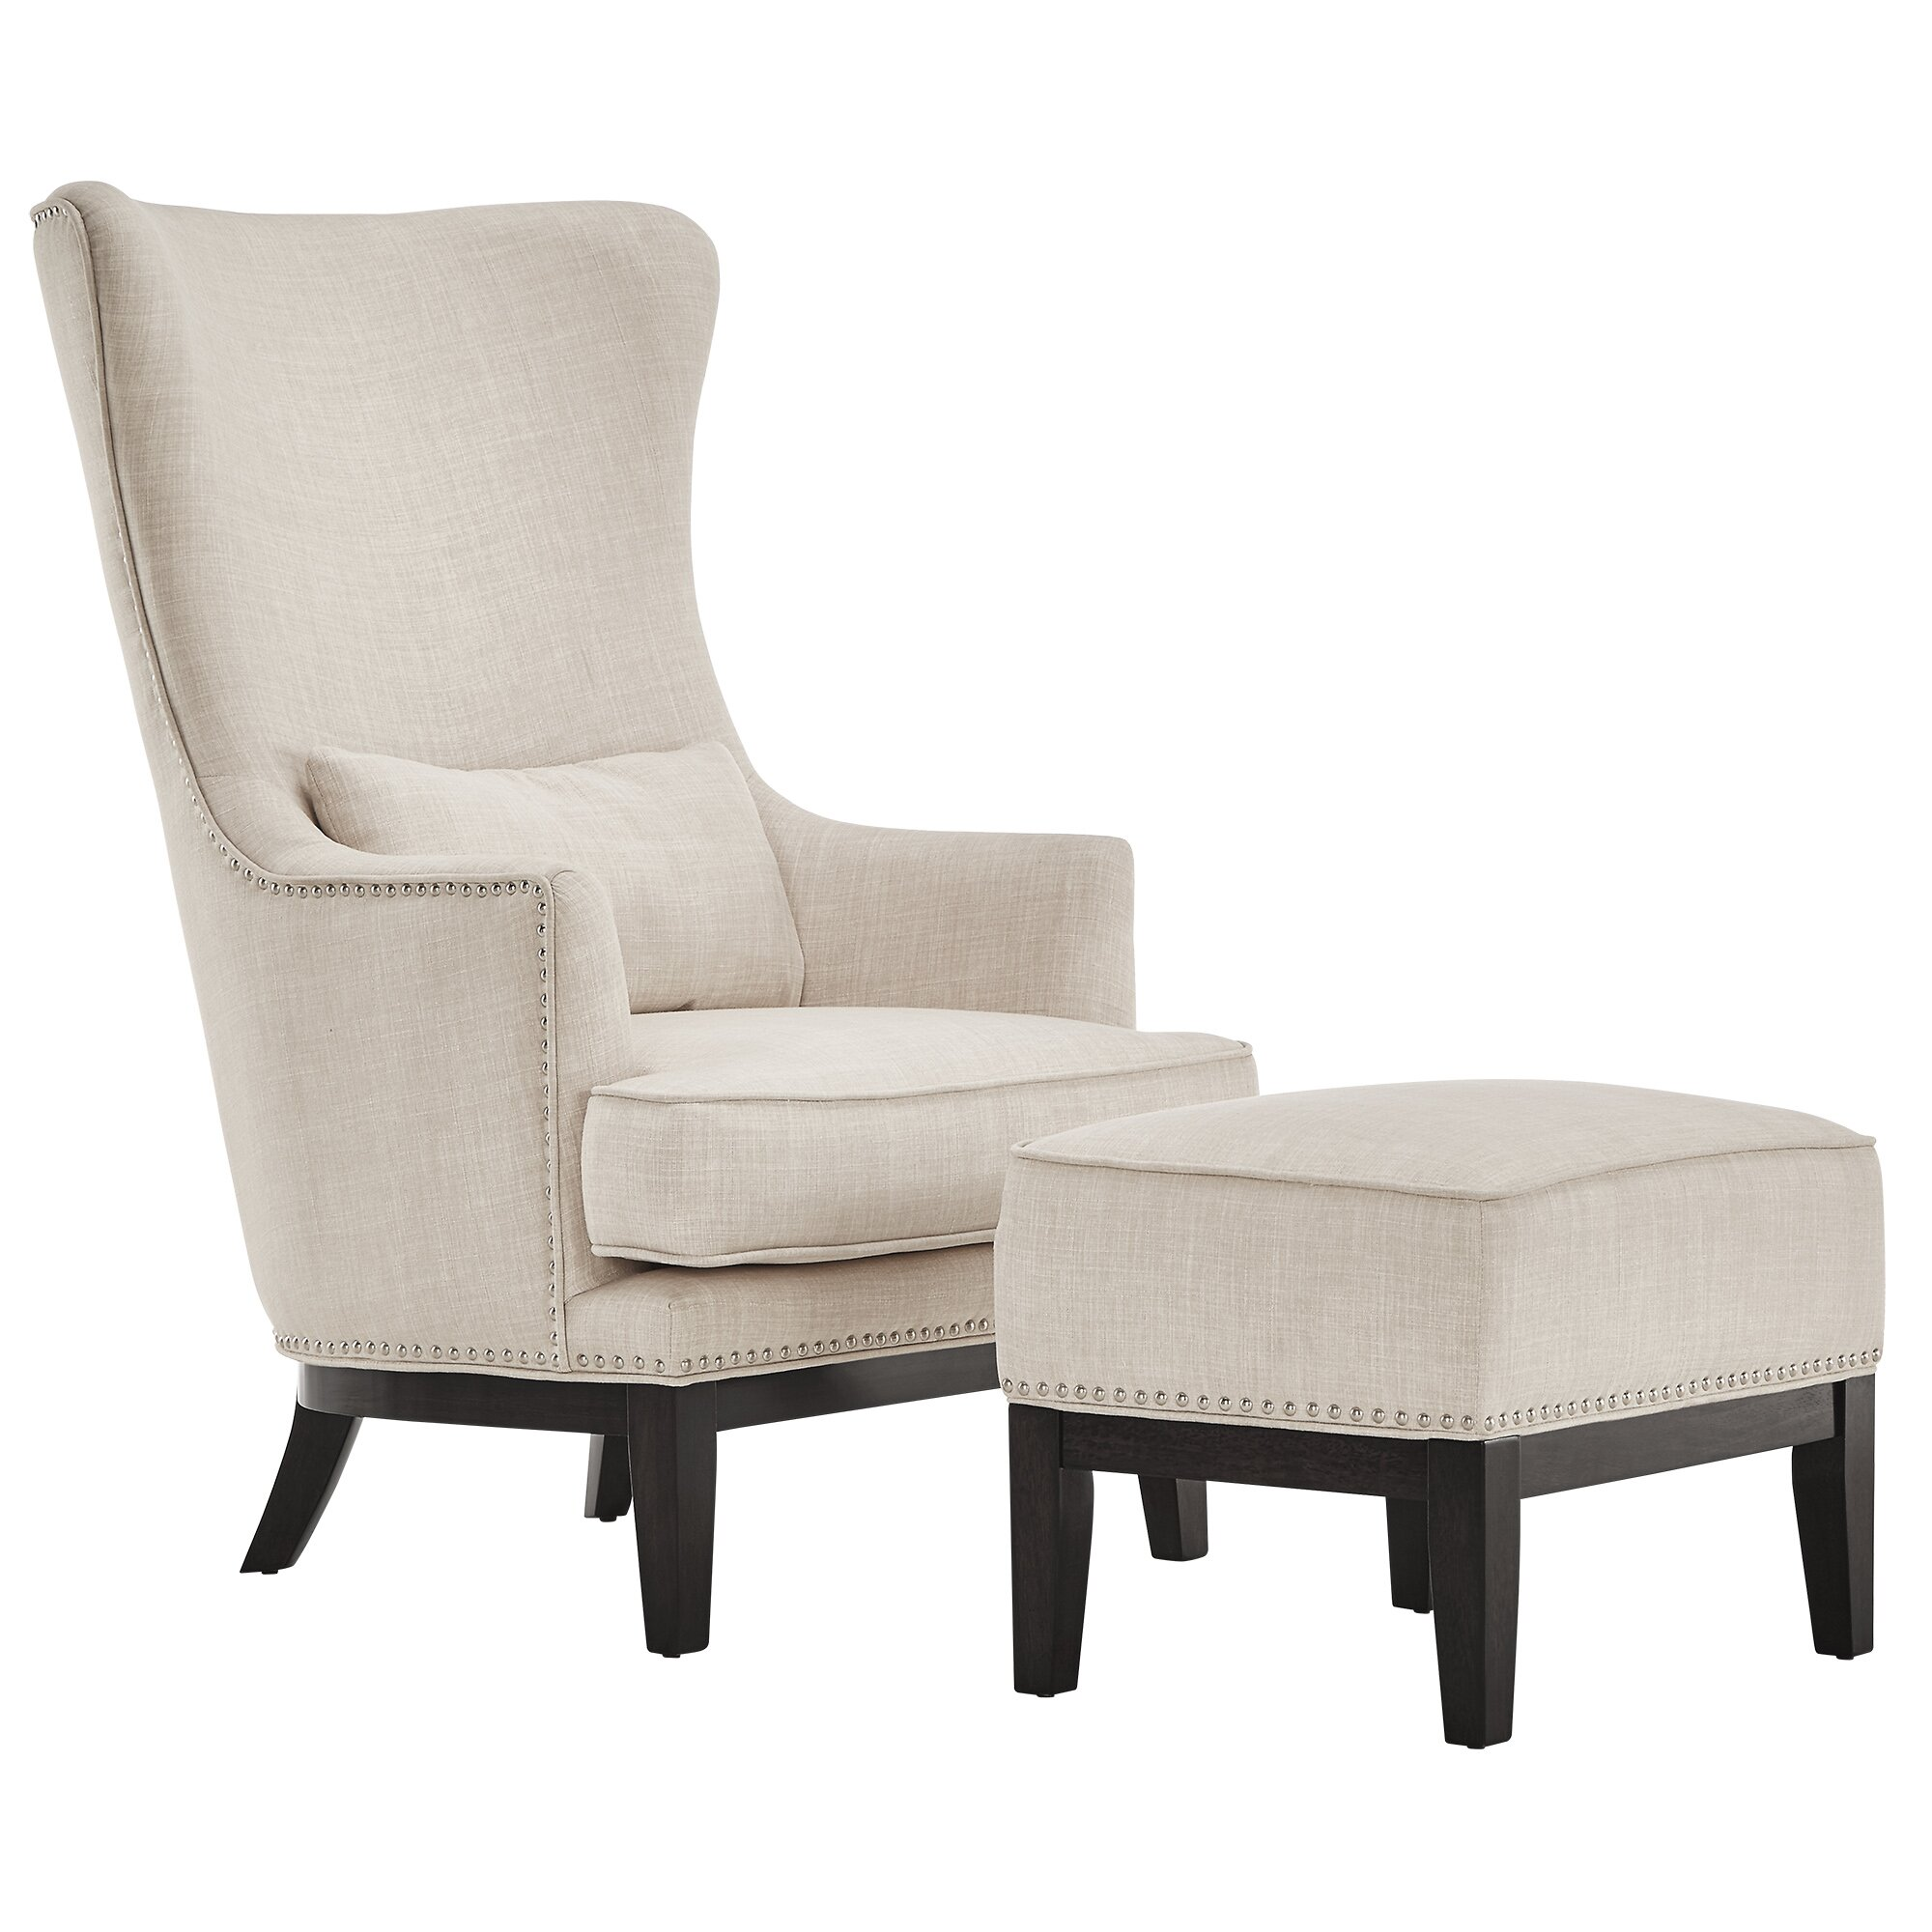 kingstown home matteo wing back chair and ottoman. Black Bedroom Furniture Sets. Home Design Ideas